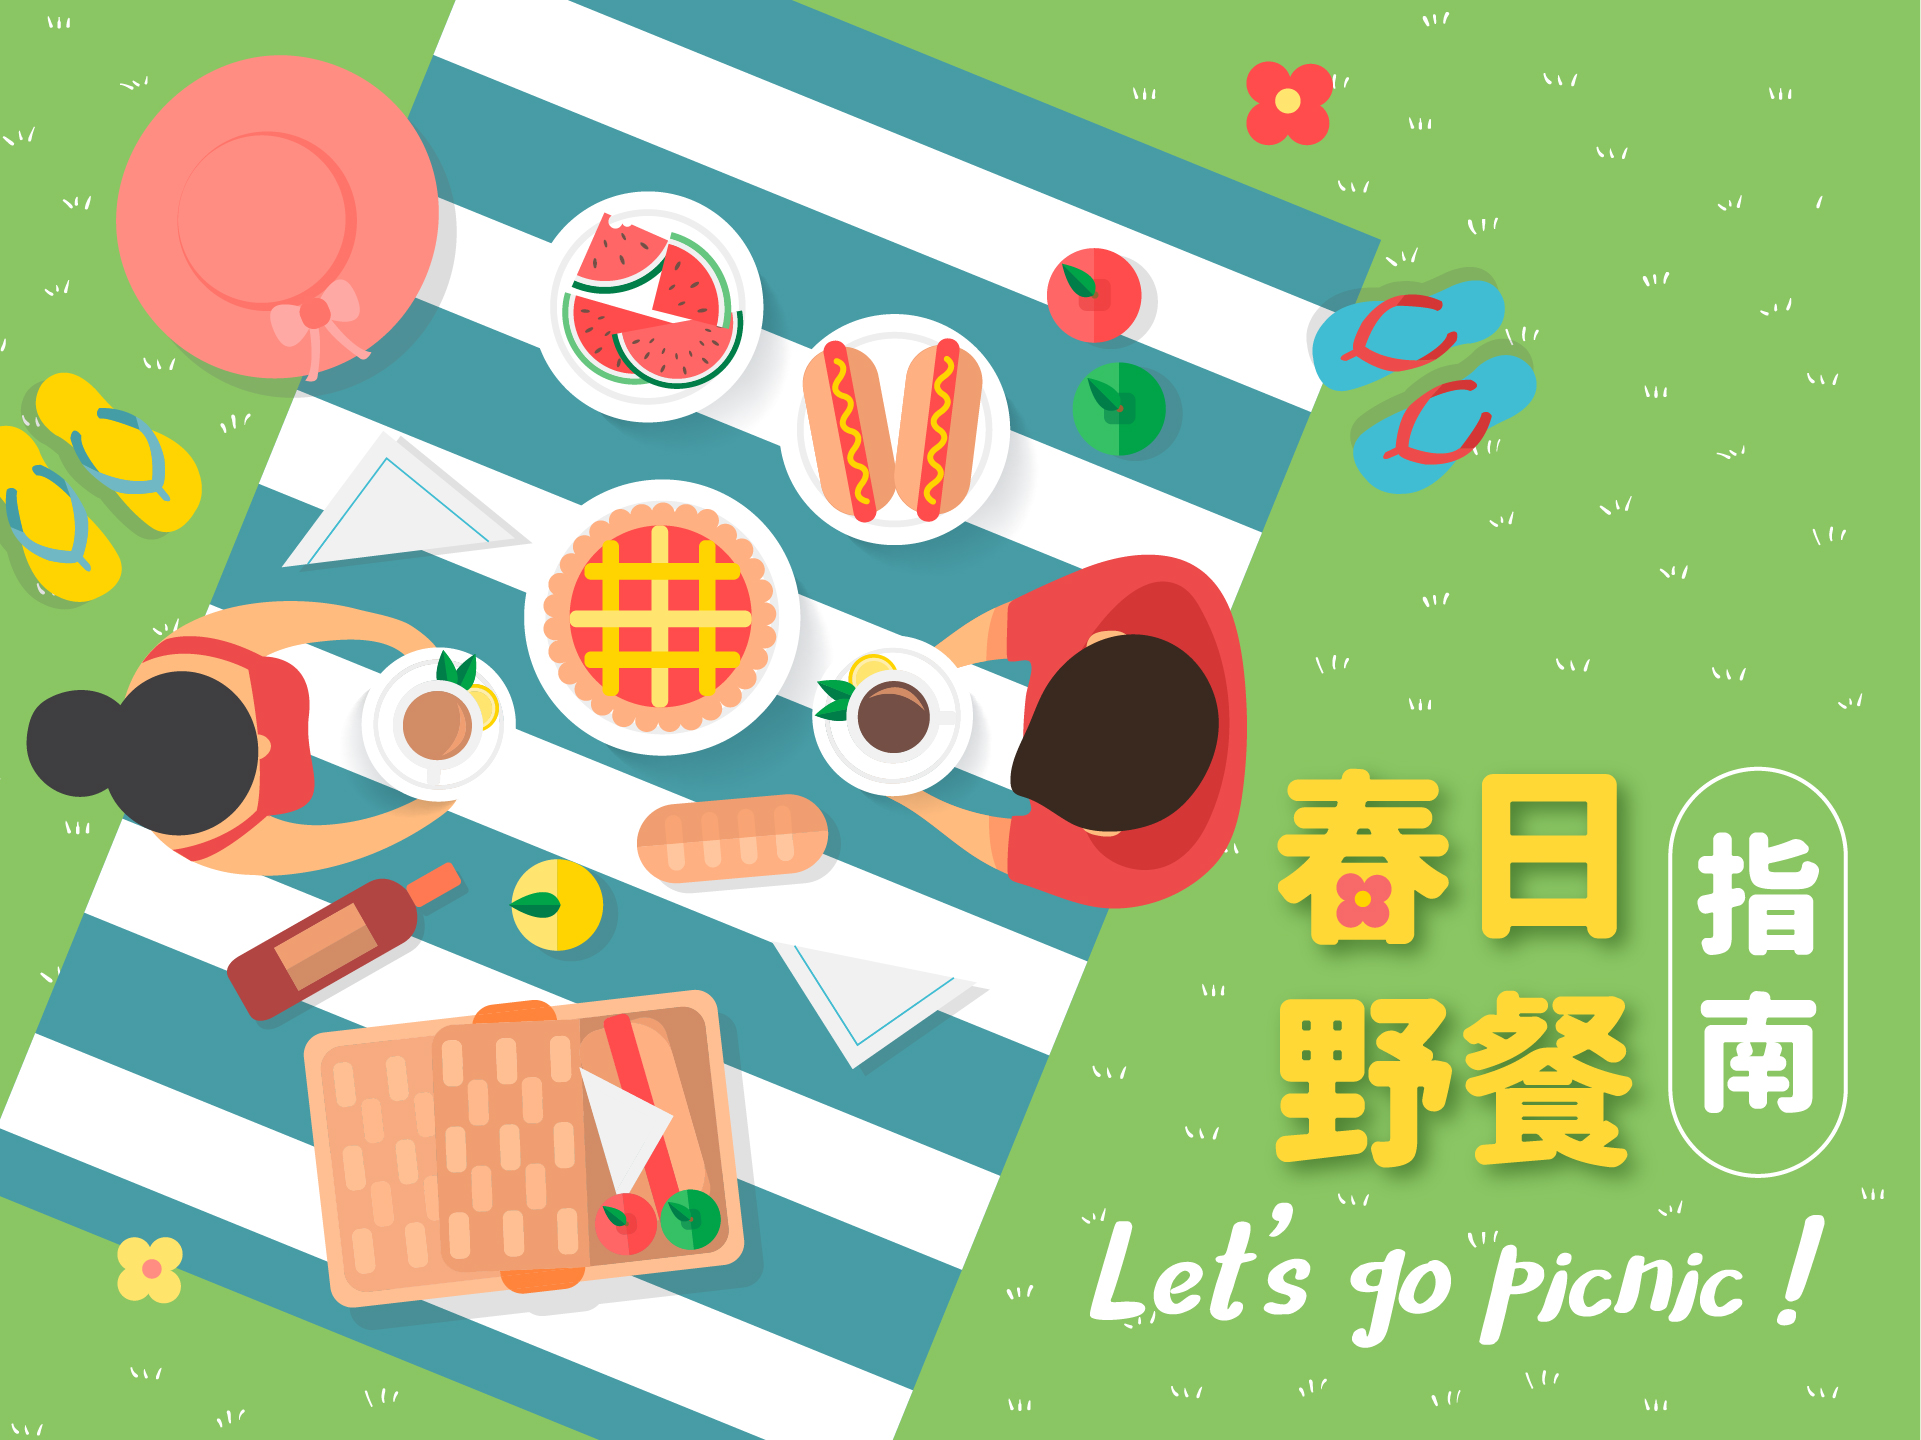 Let's go picnic 春日野餐指南